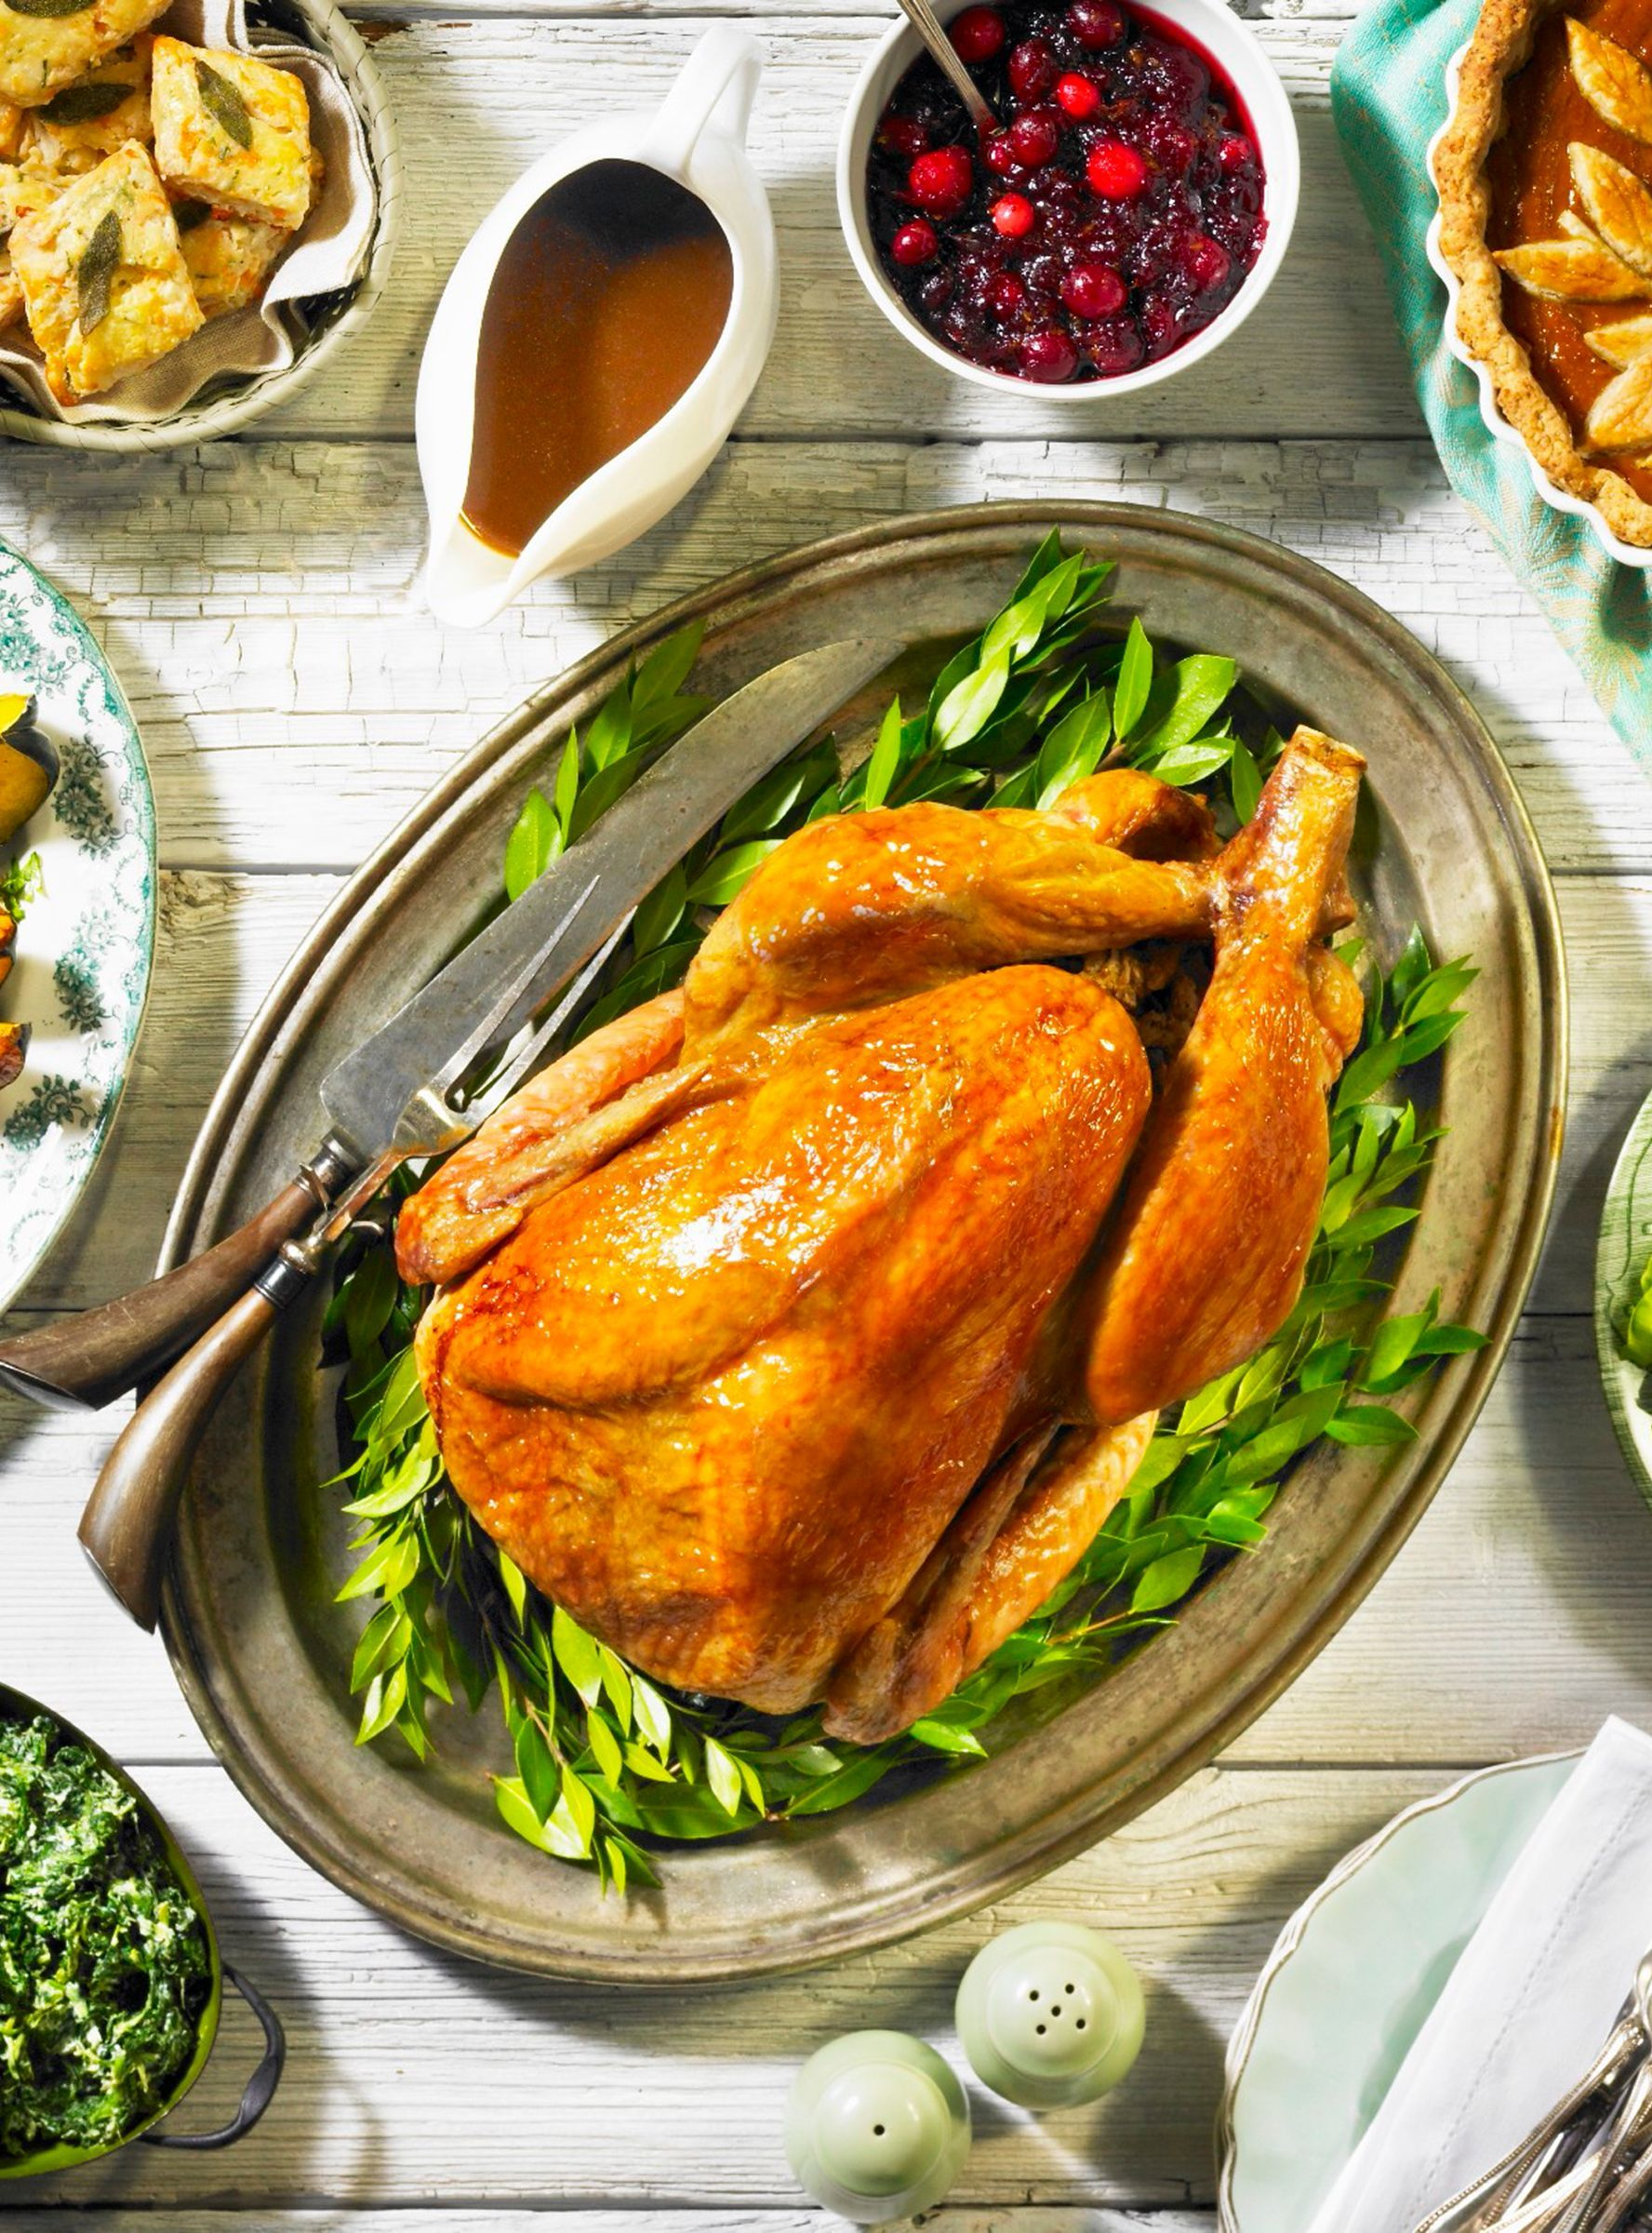 A Drinking Game You Can Play With Your Cousins On Thanksgiving Https R29 Co 2qy3fv0 Thanksgiving Dinner Dinner Thanksgiving Recipes